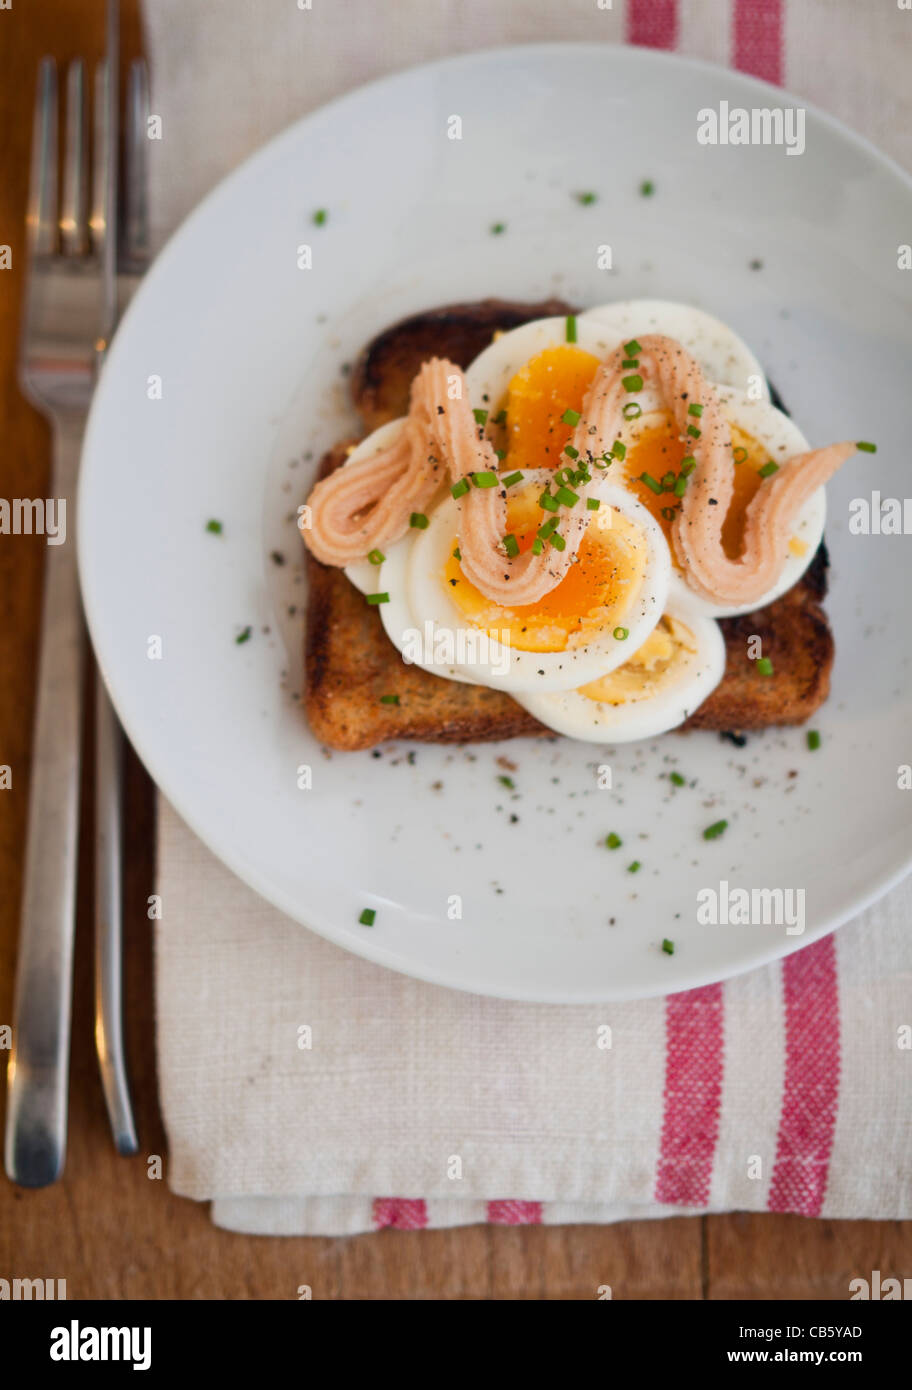 Classic Swedish open faced sandwich of sliced boiled egg topped with Kalle's kaviar and sprinkled with chopped chives. Stock Photo